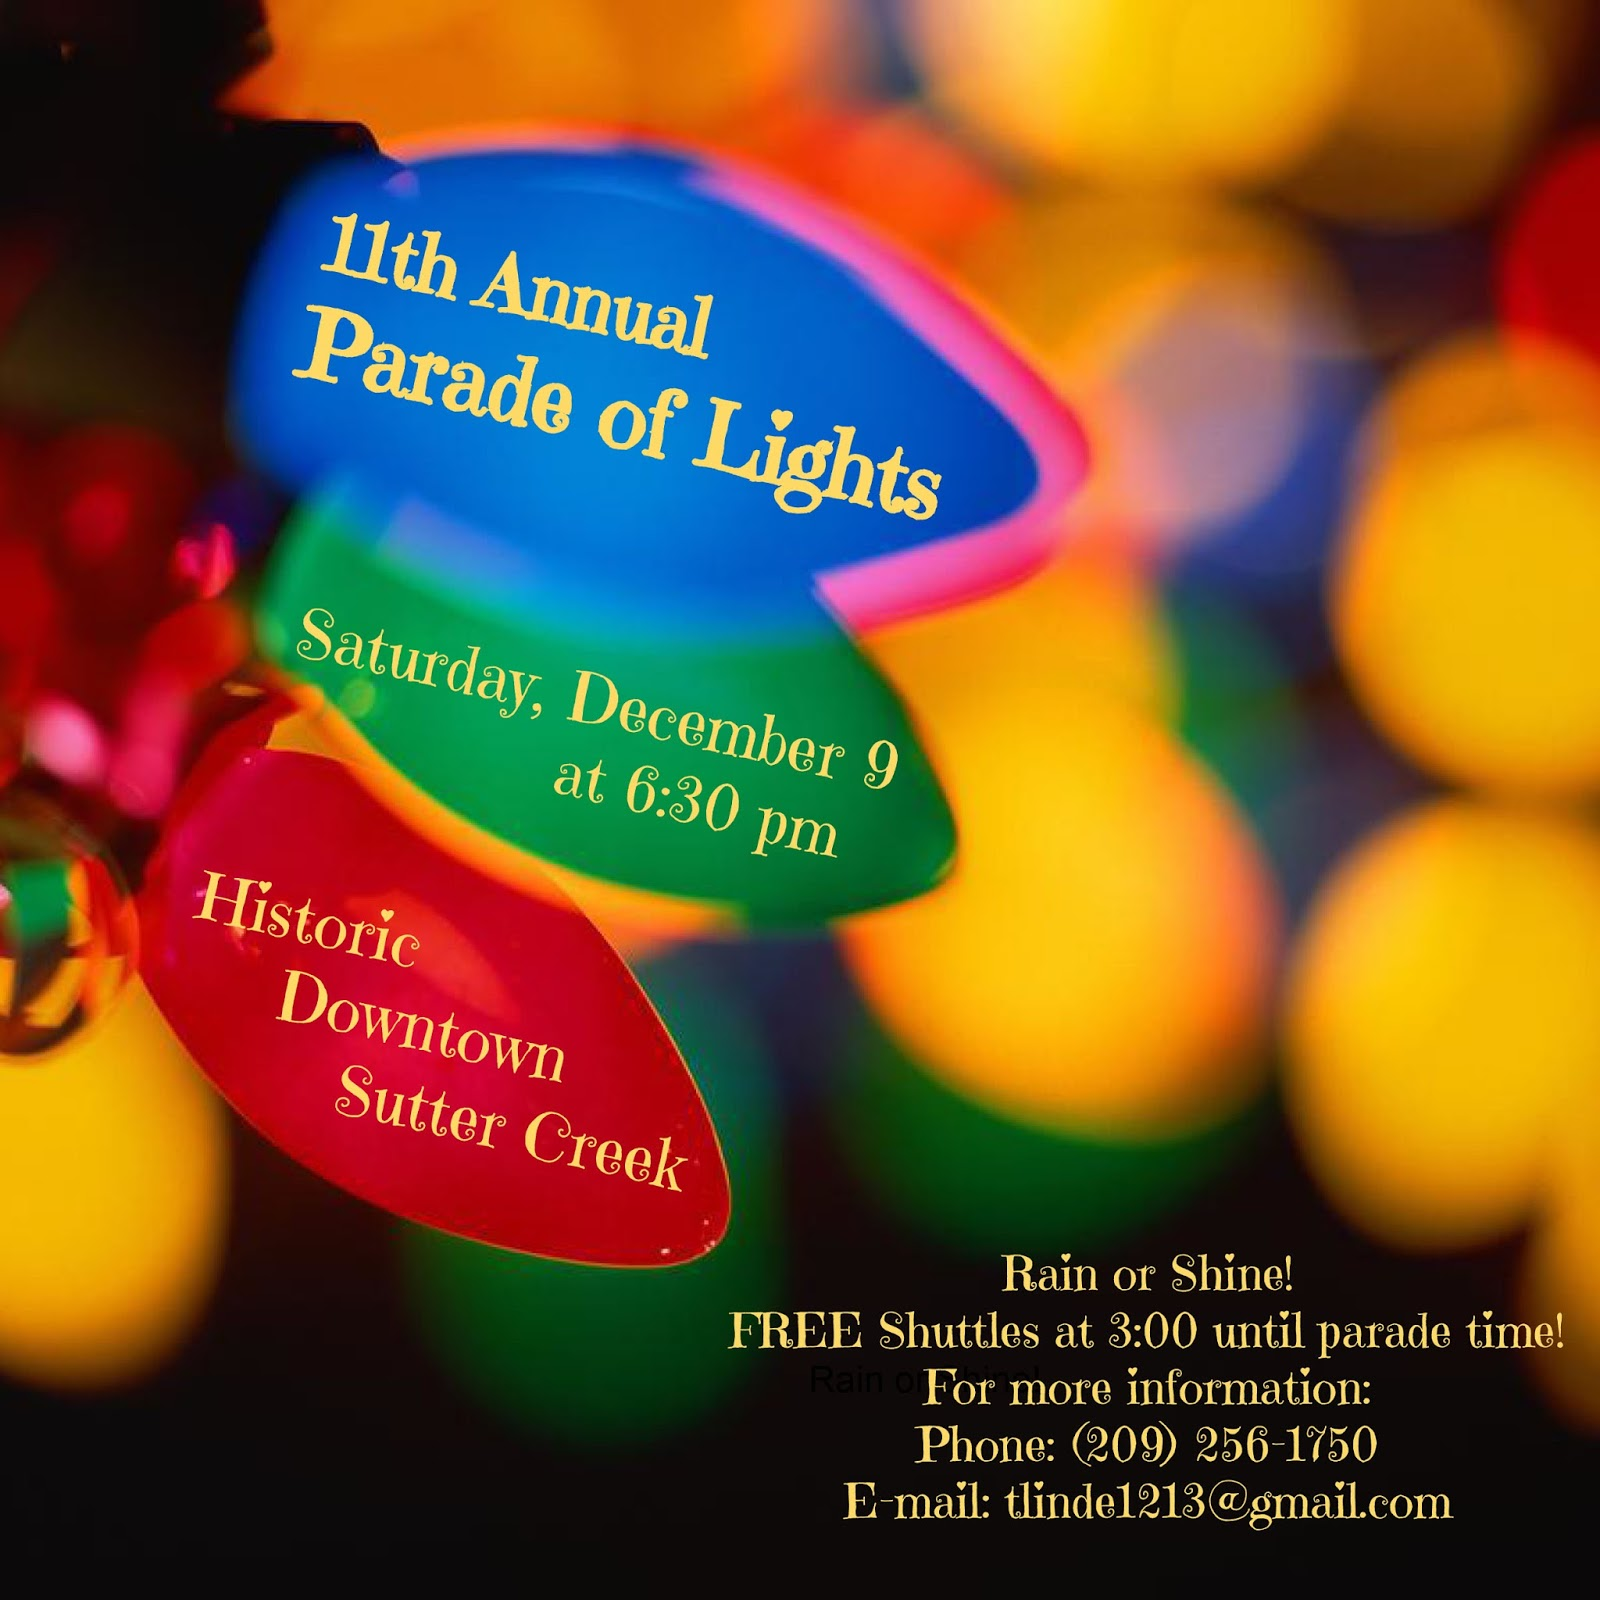 11th Annual Parade of Lights - Sat Dec 9